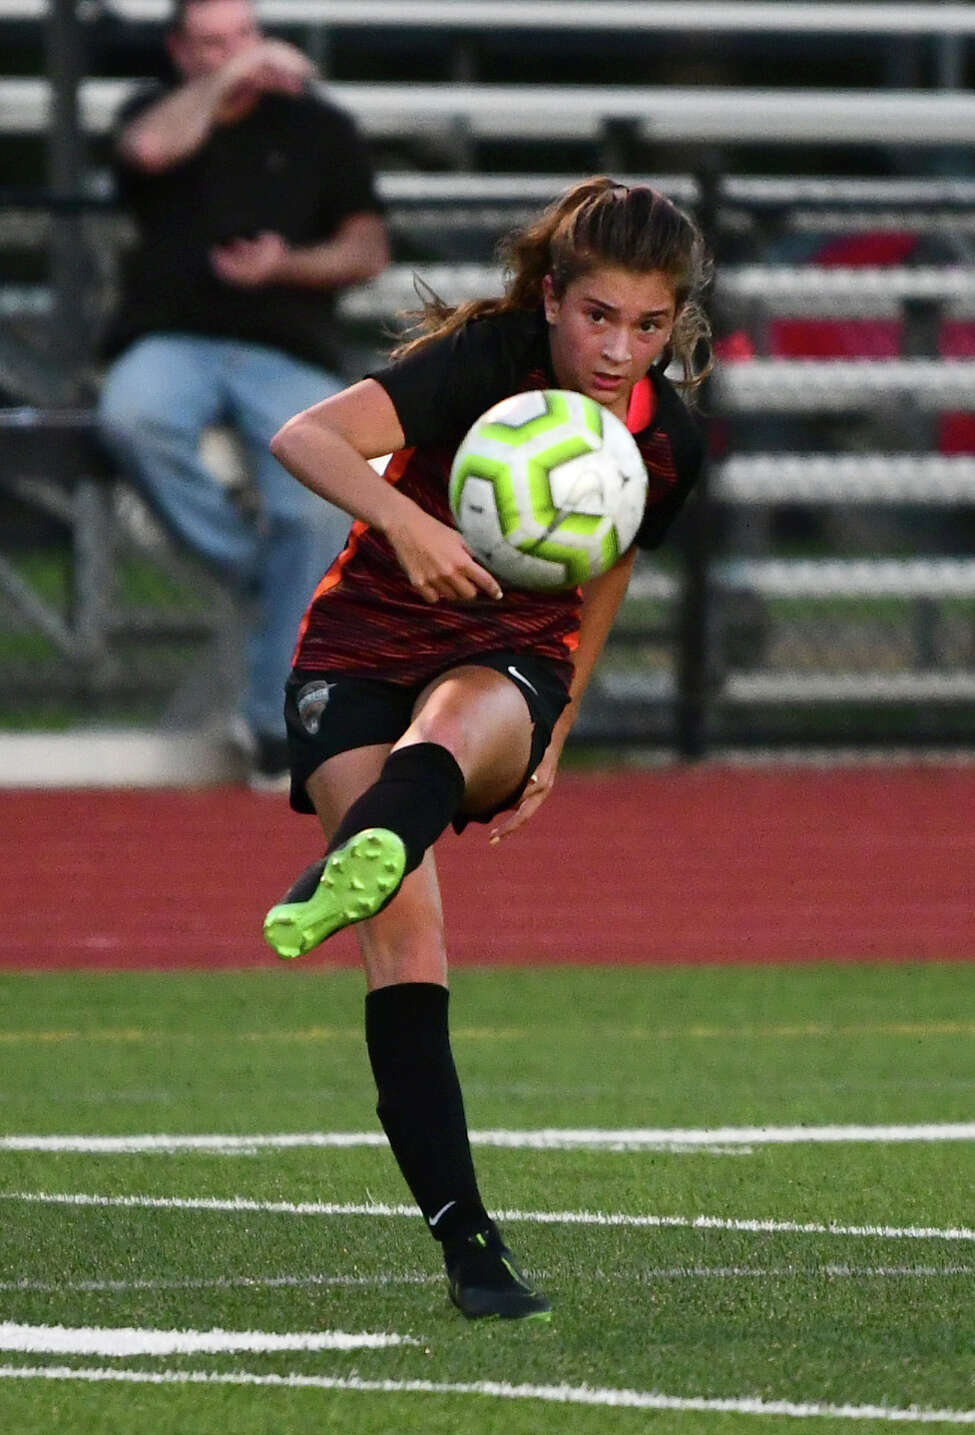 Mohonasen's Liv Raucci kicks the ball during a soccer game against Academy of Holy Names on Wednesday, Sept. 11, 2019 in Rotterdam N.Y. (Lori Van Buren/Times Union)